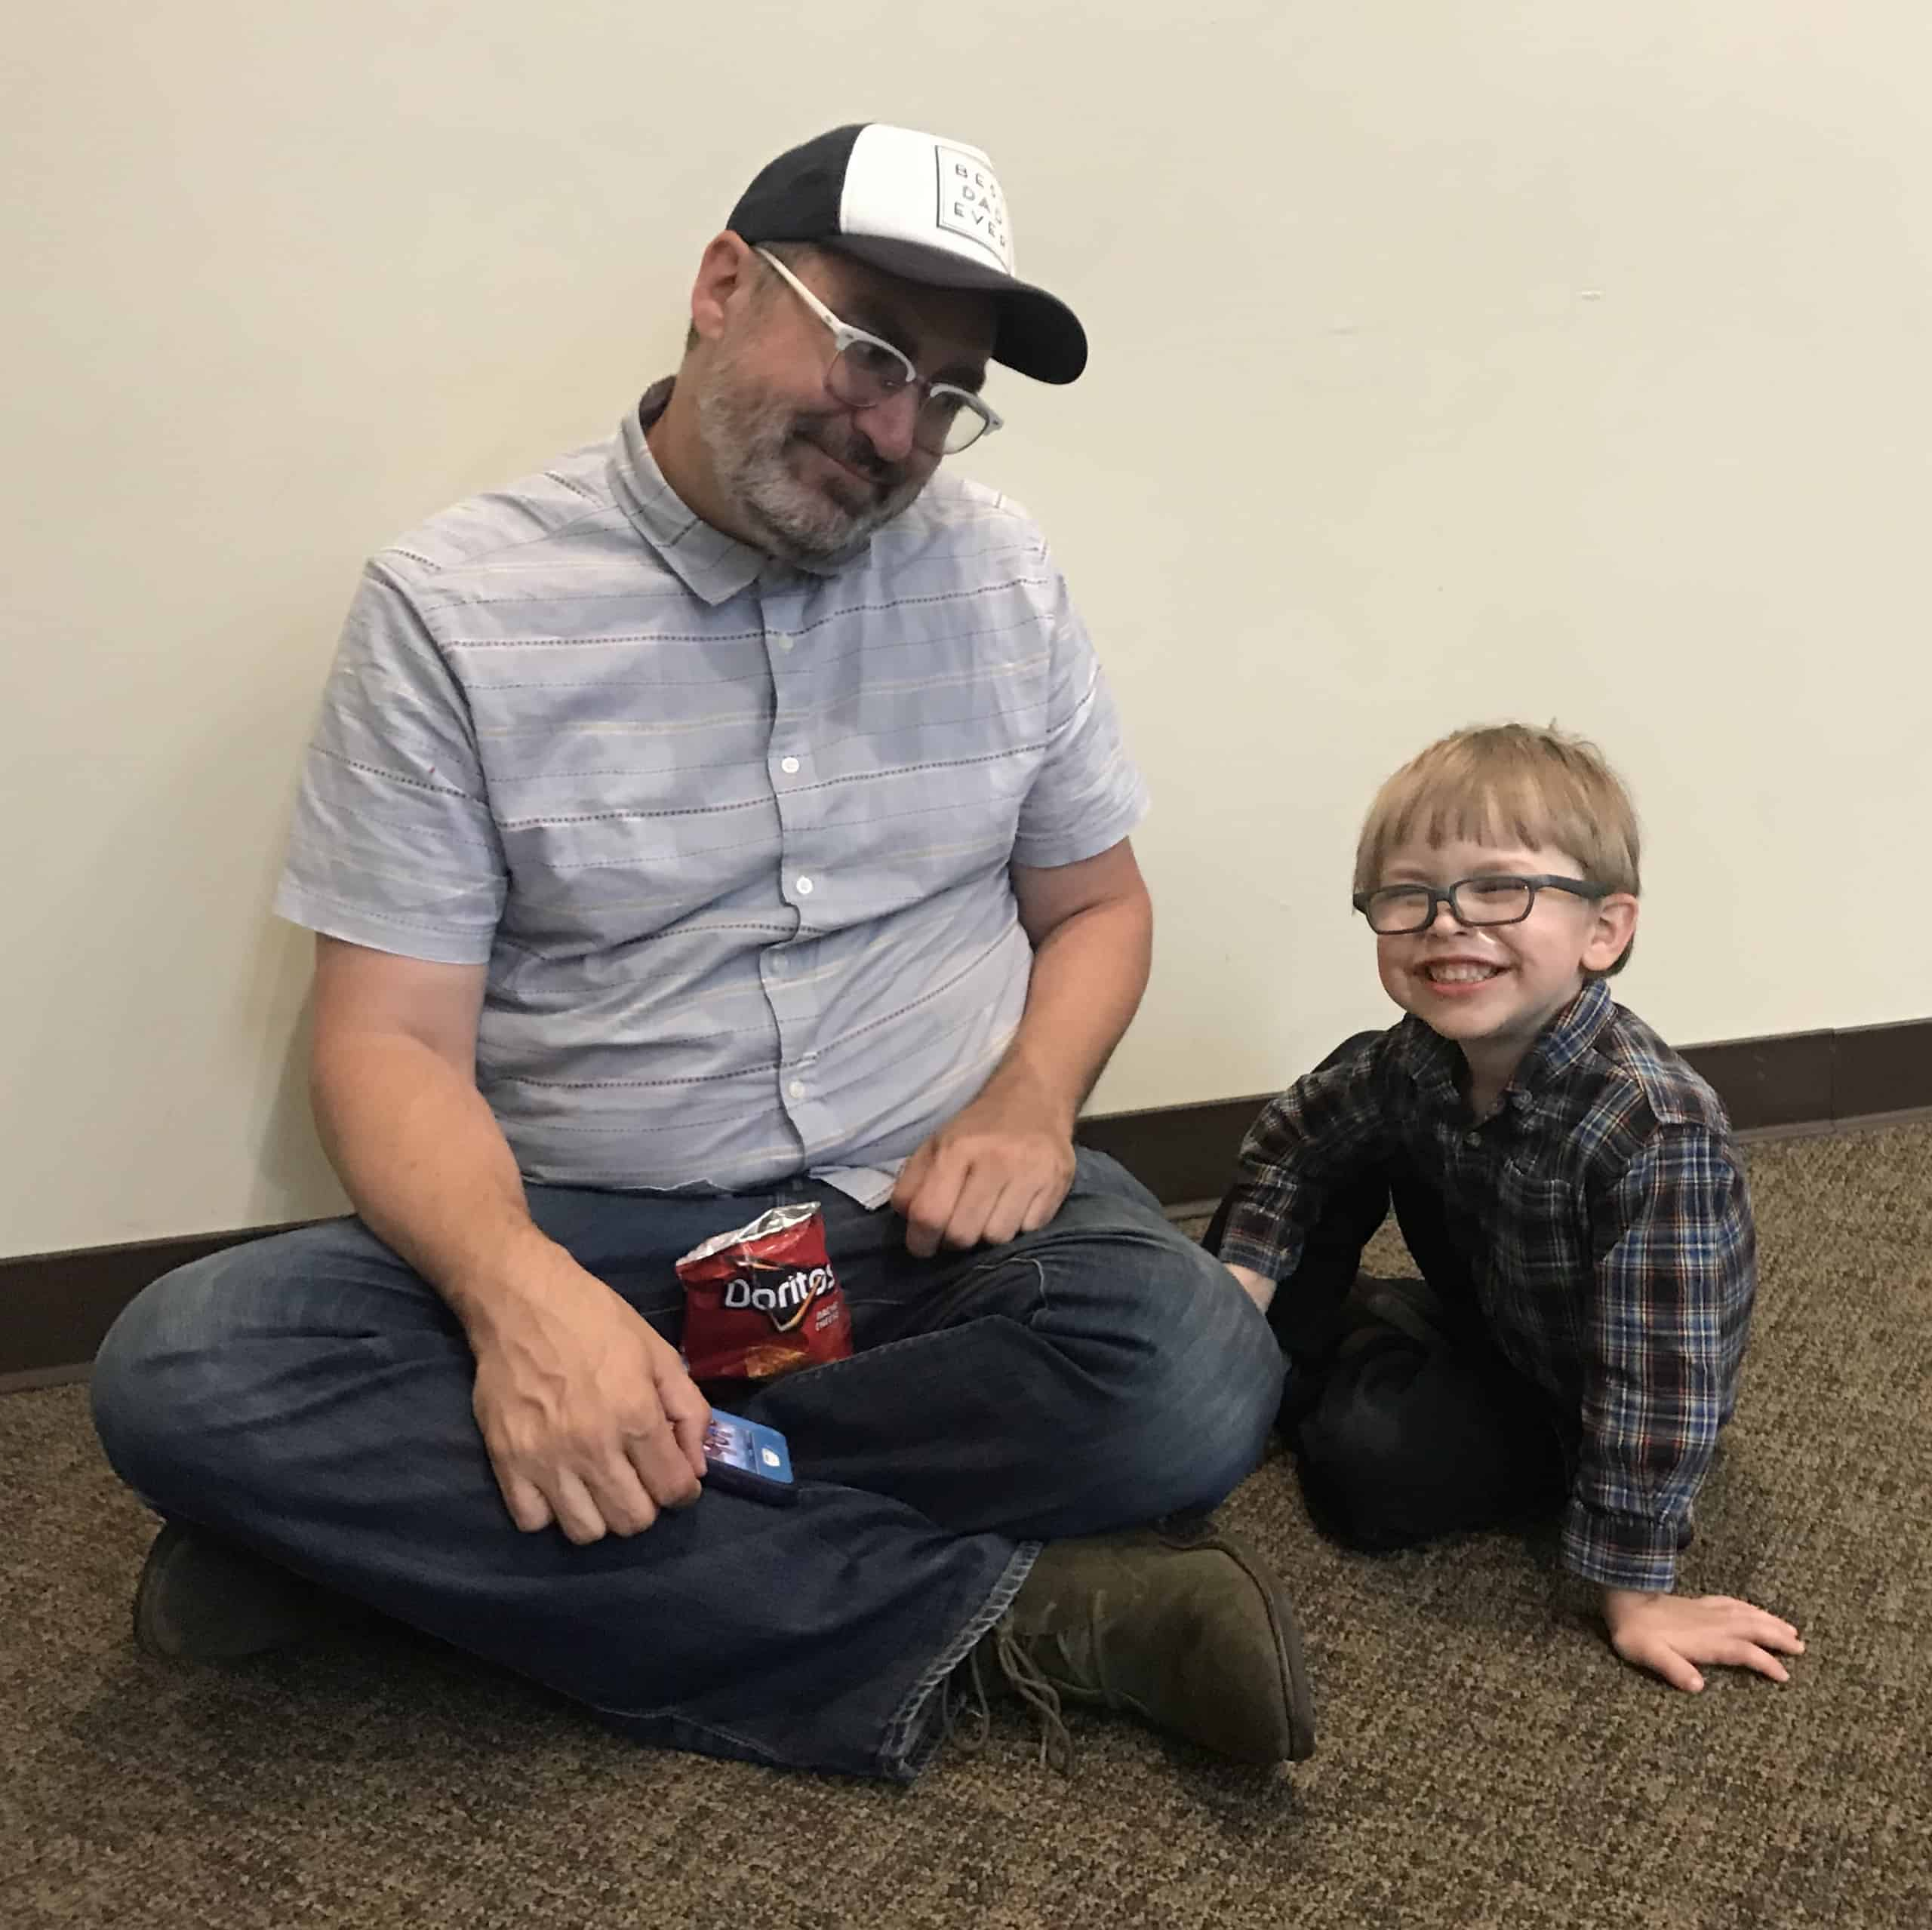 A man and a preschool boy with glasses sit on the floor, smiling